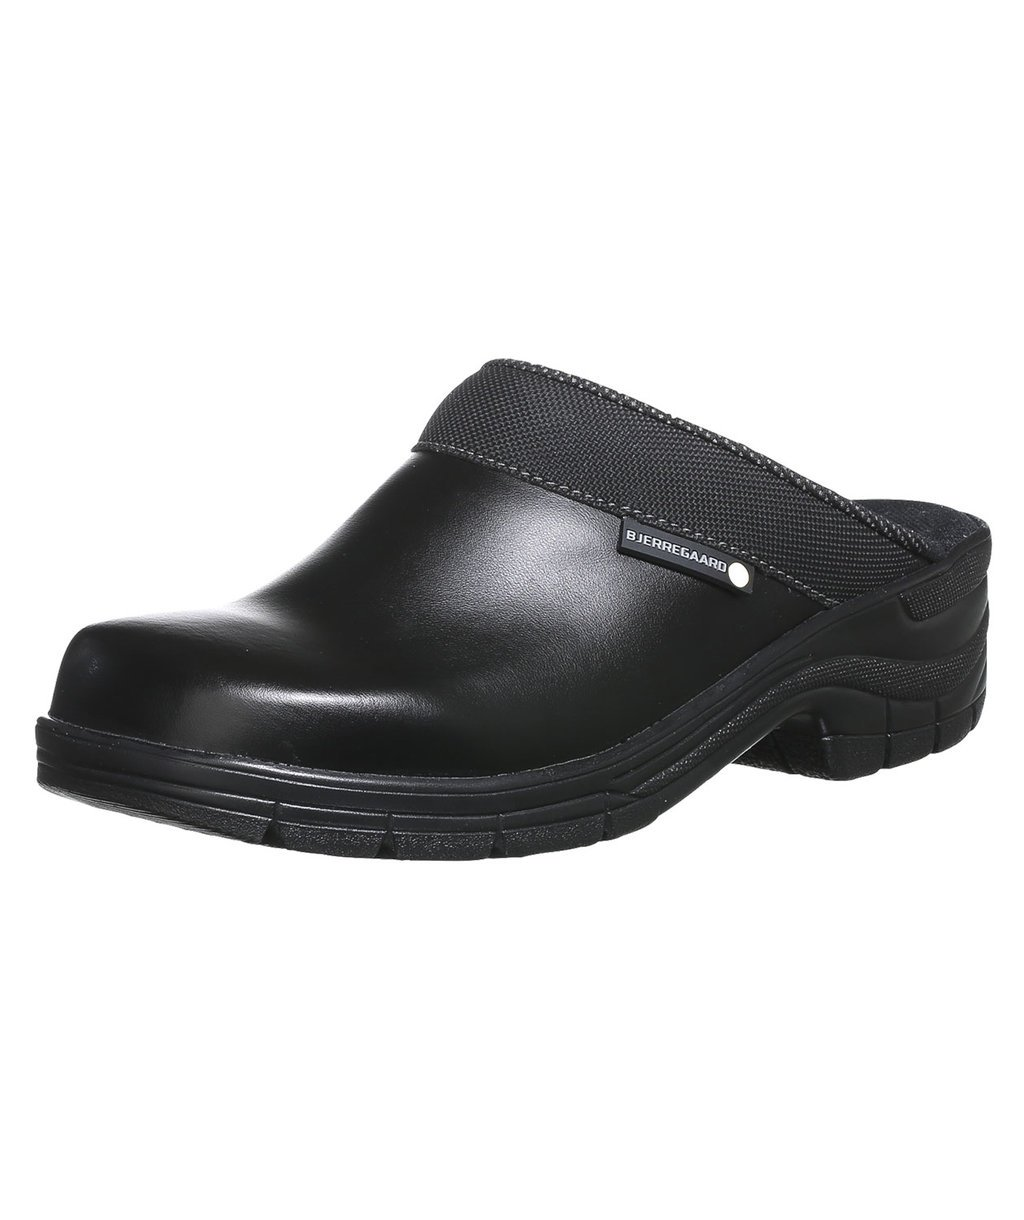 Bjerregaard 5910 clogs without heel cover, Black